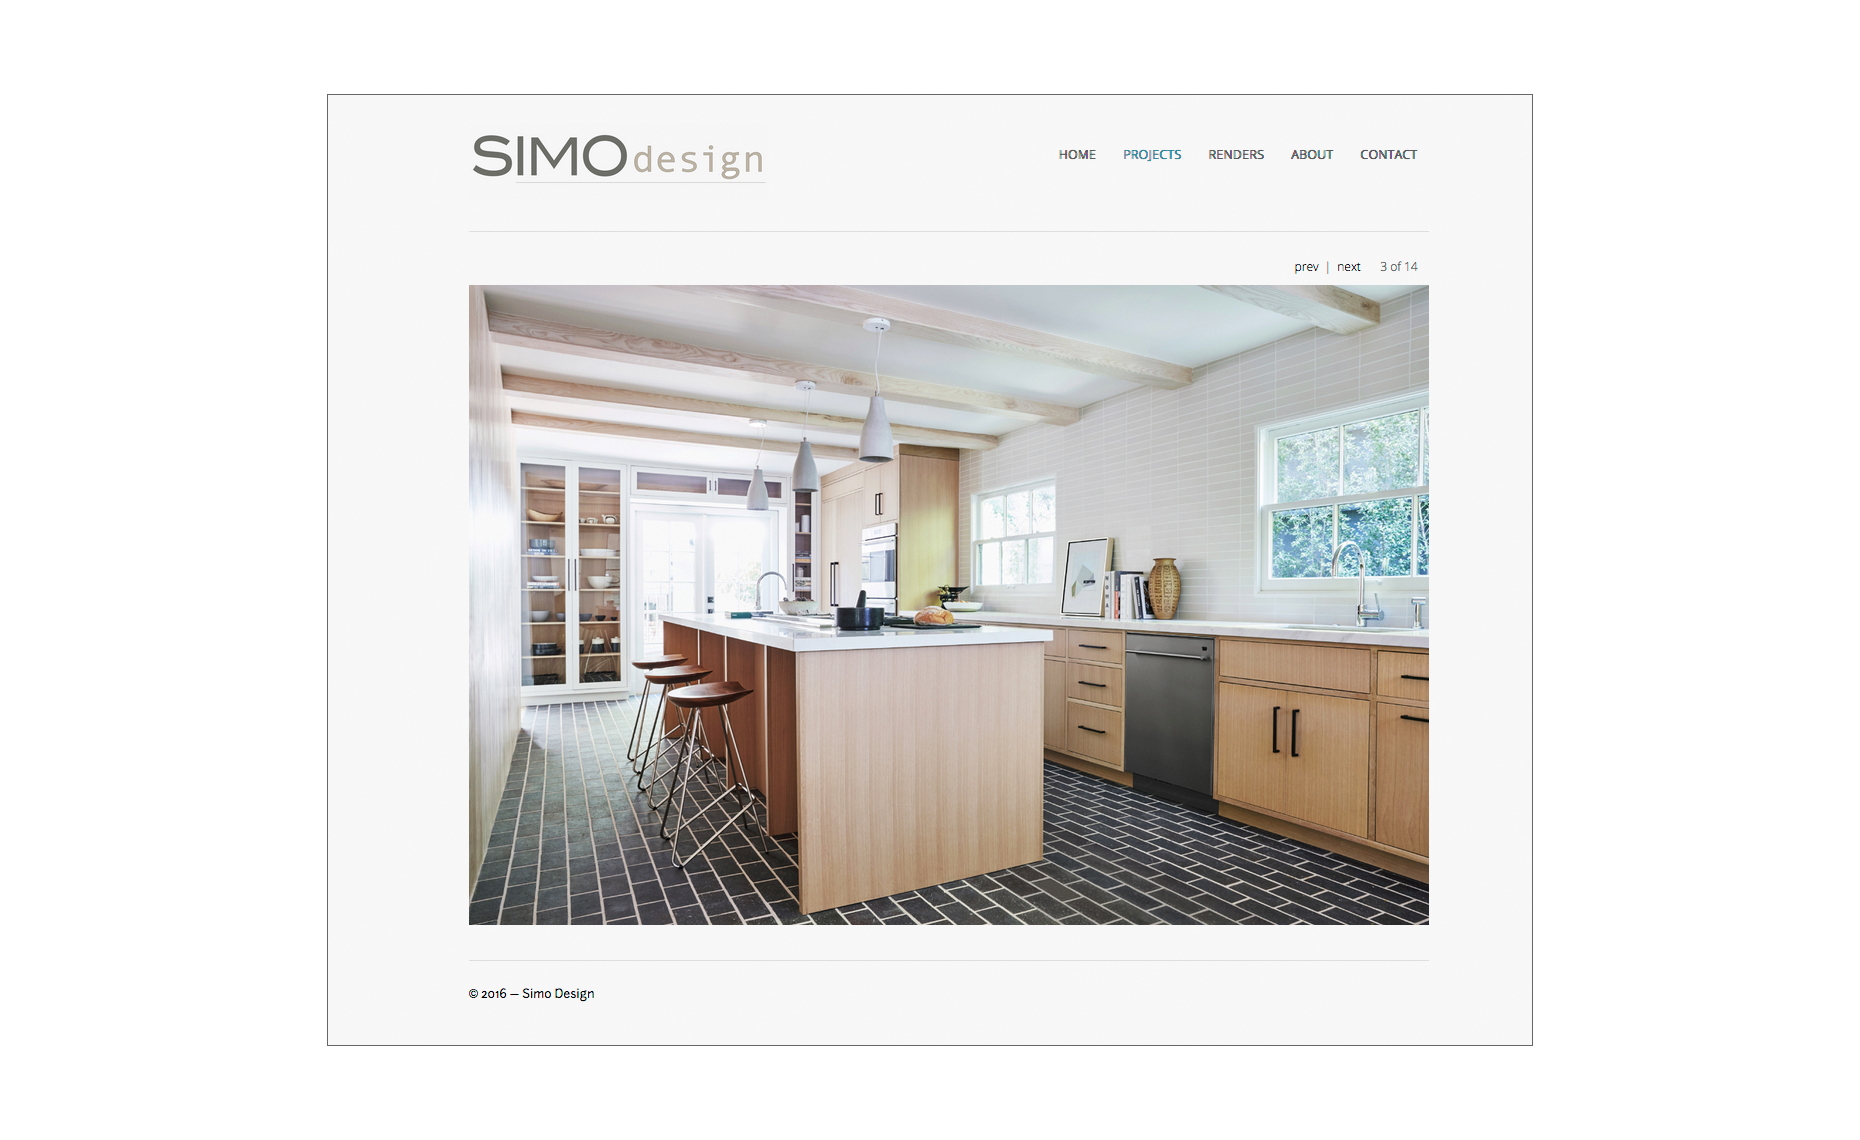 simodesign_web-4